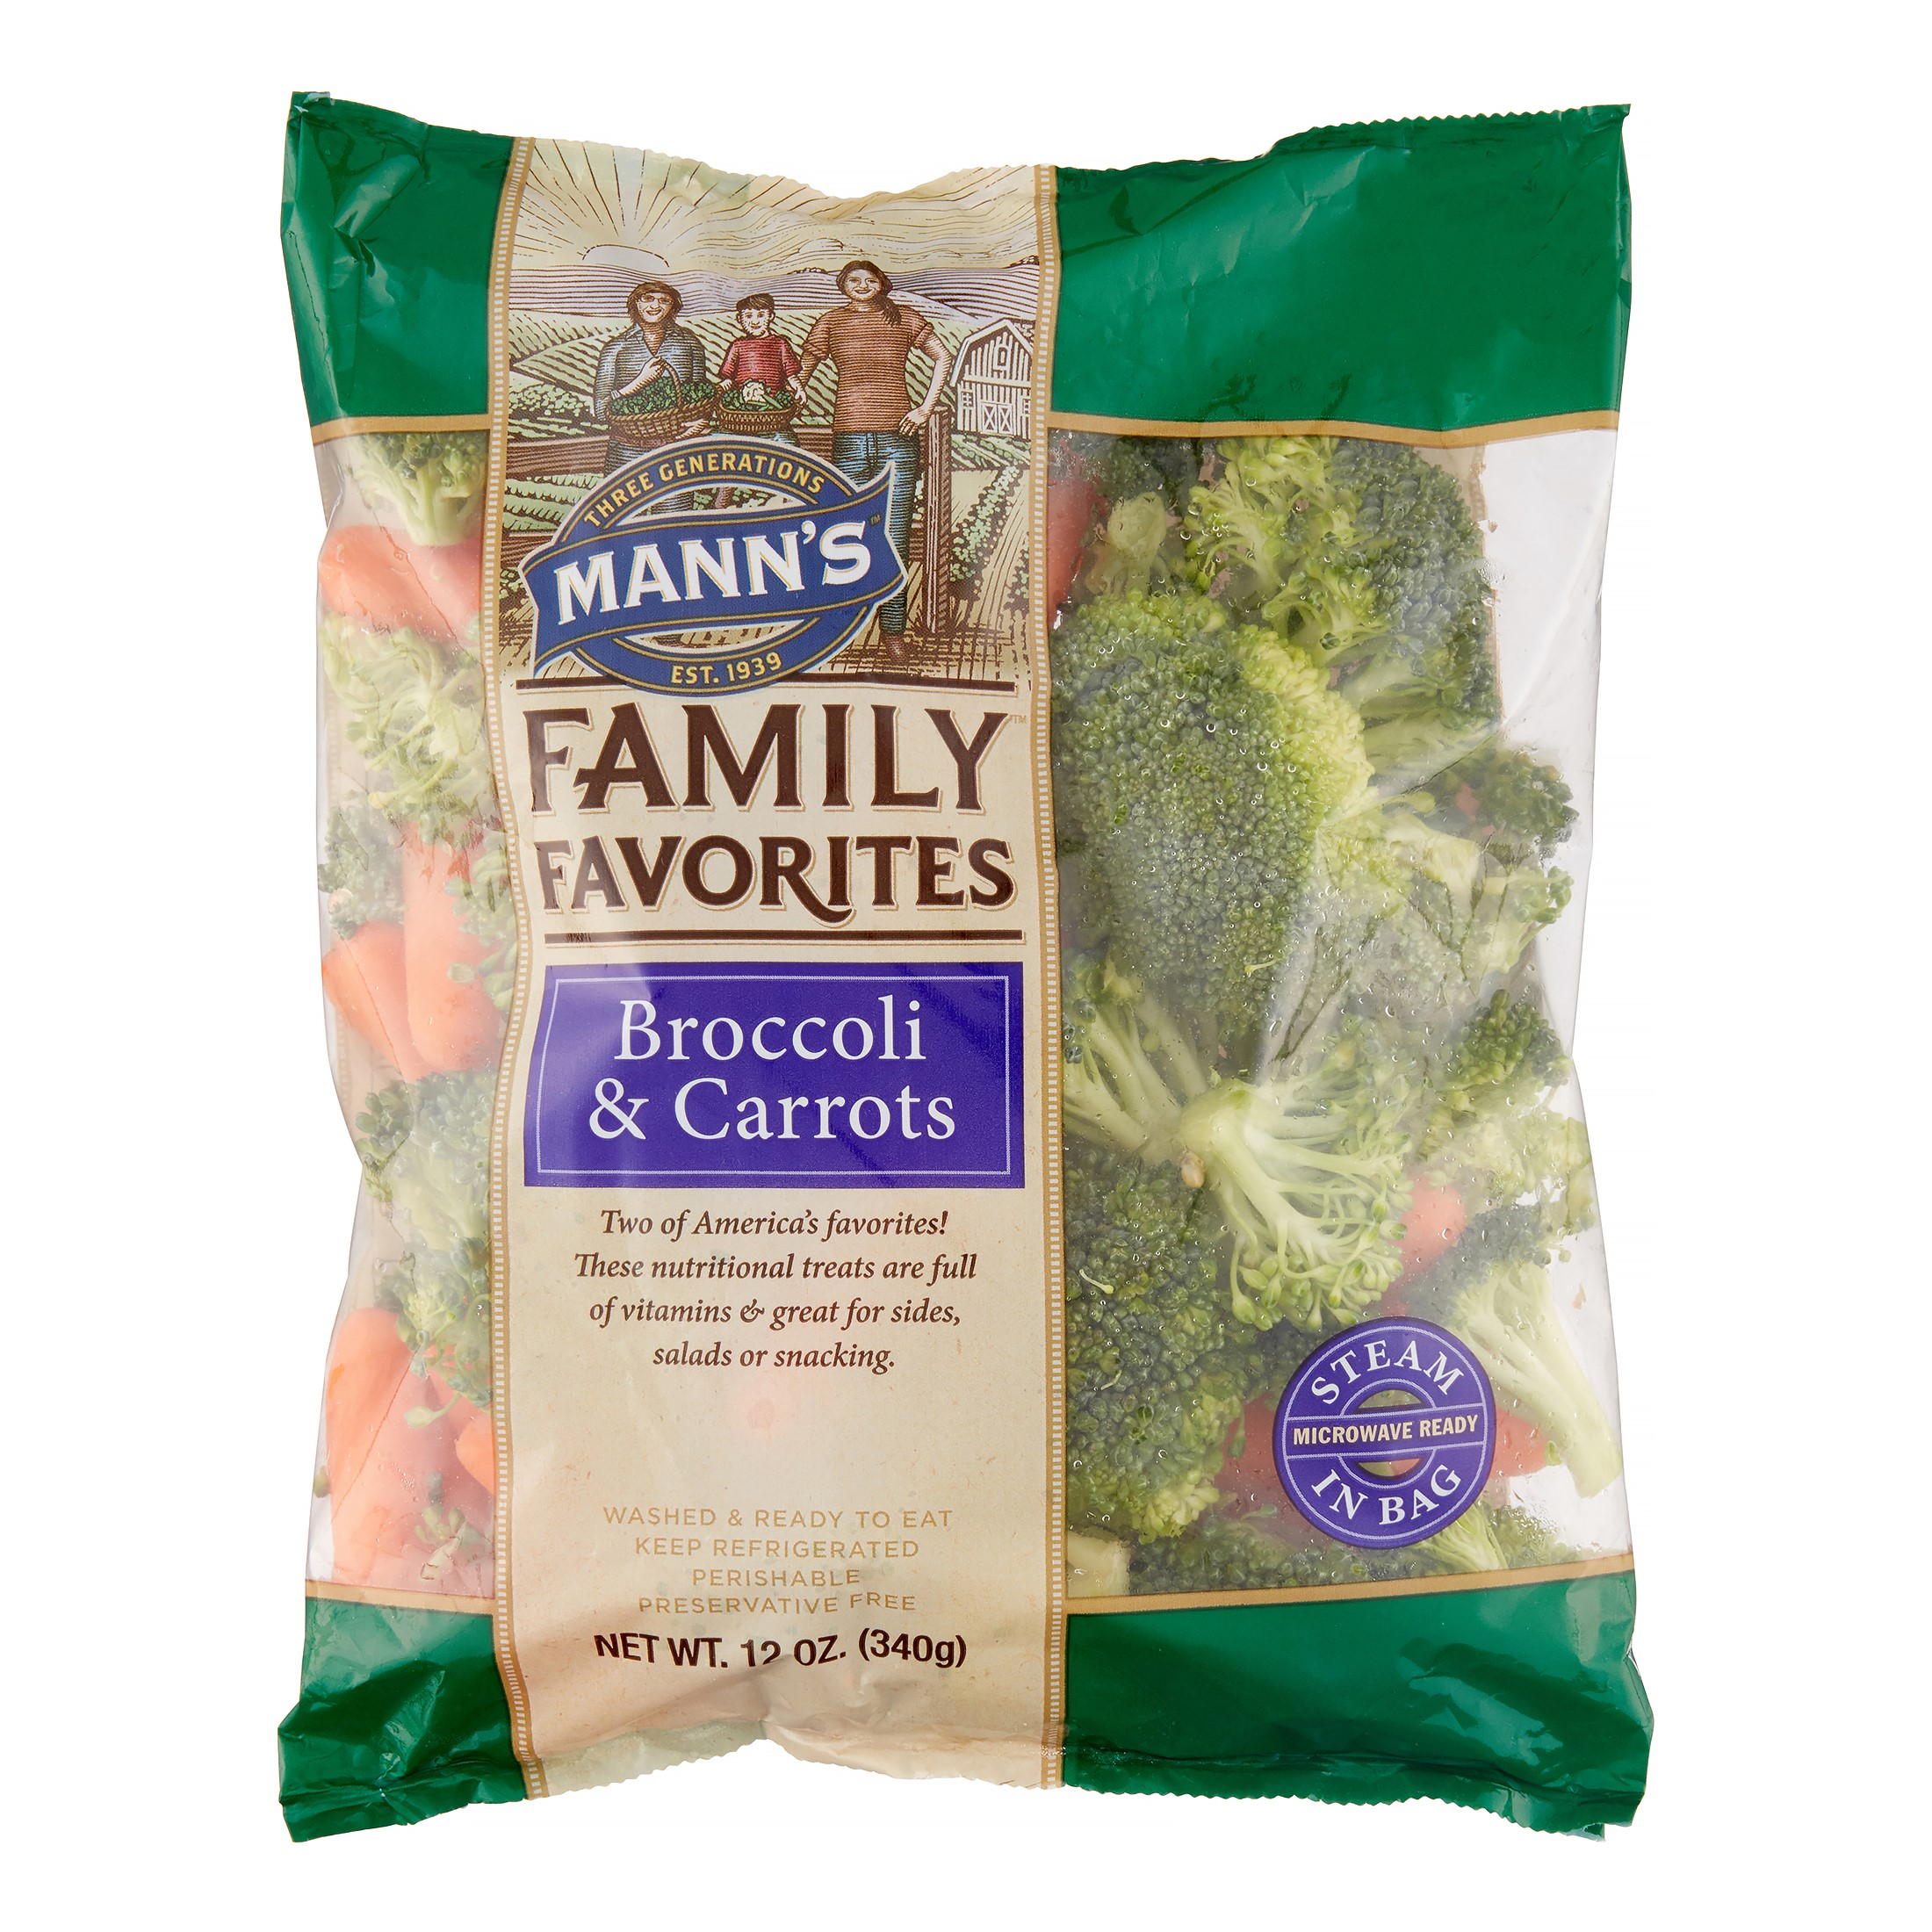 Manns Packing Manns Sunny Shores Broccoli & Carrots, 12 oz